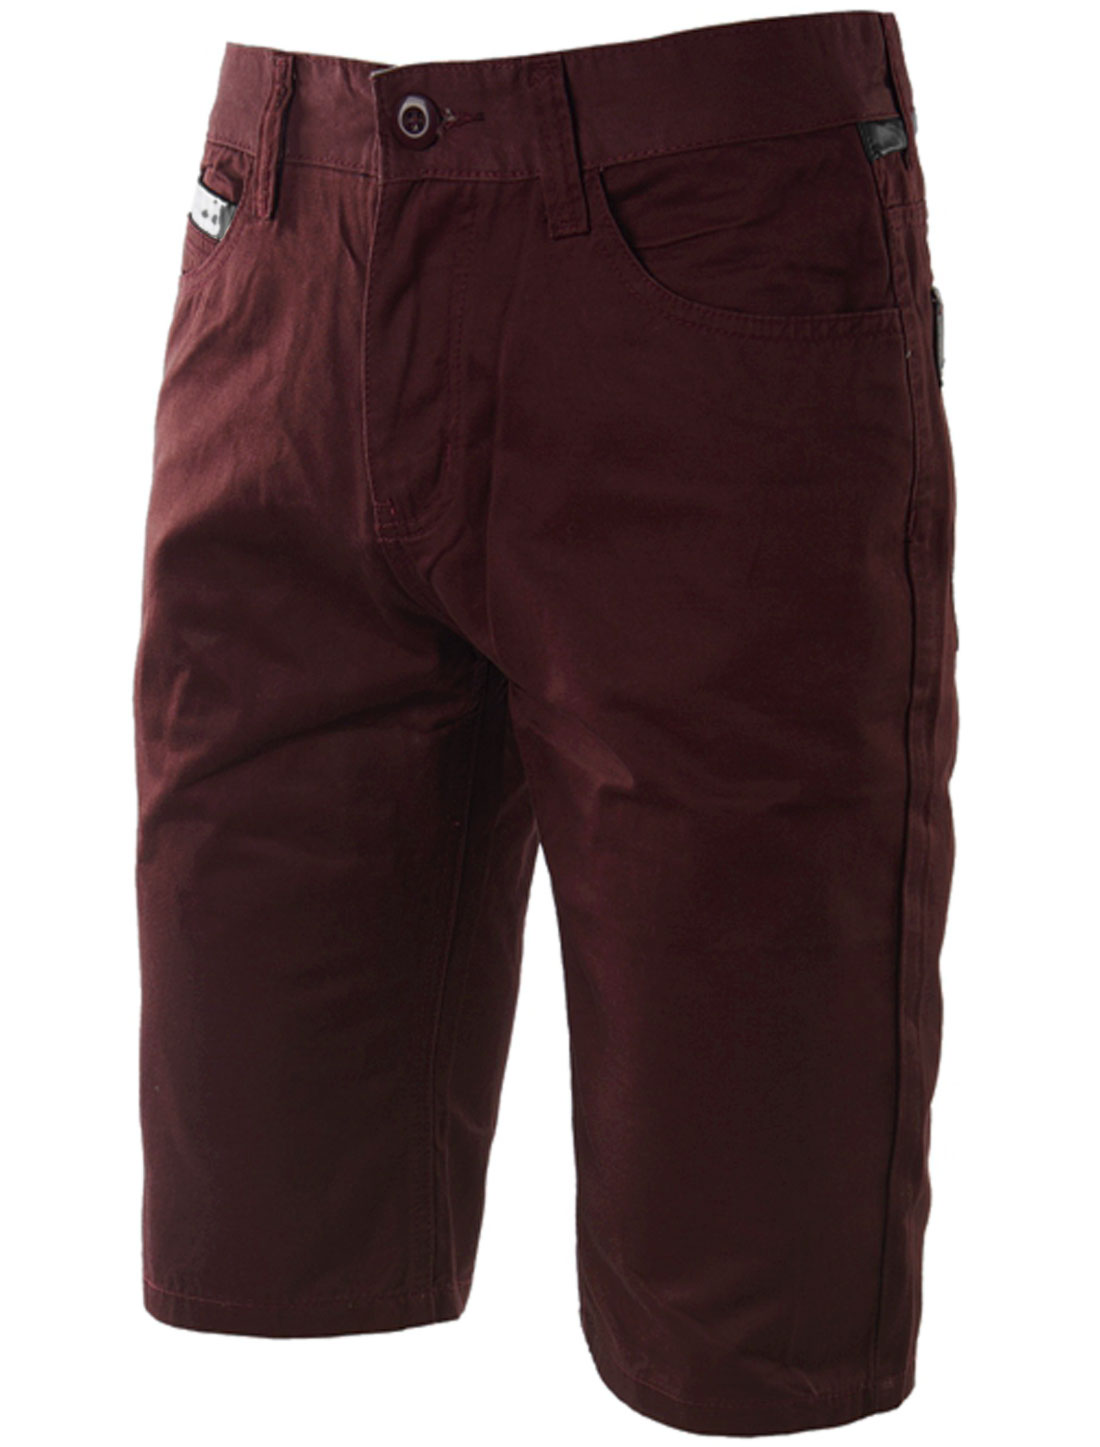 Man's Zip Fly Mid Rise Belt Loop Summer Fit Chino Shorts Burgundy W32